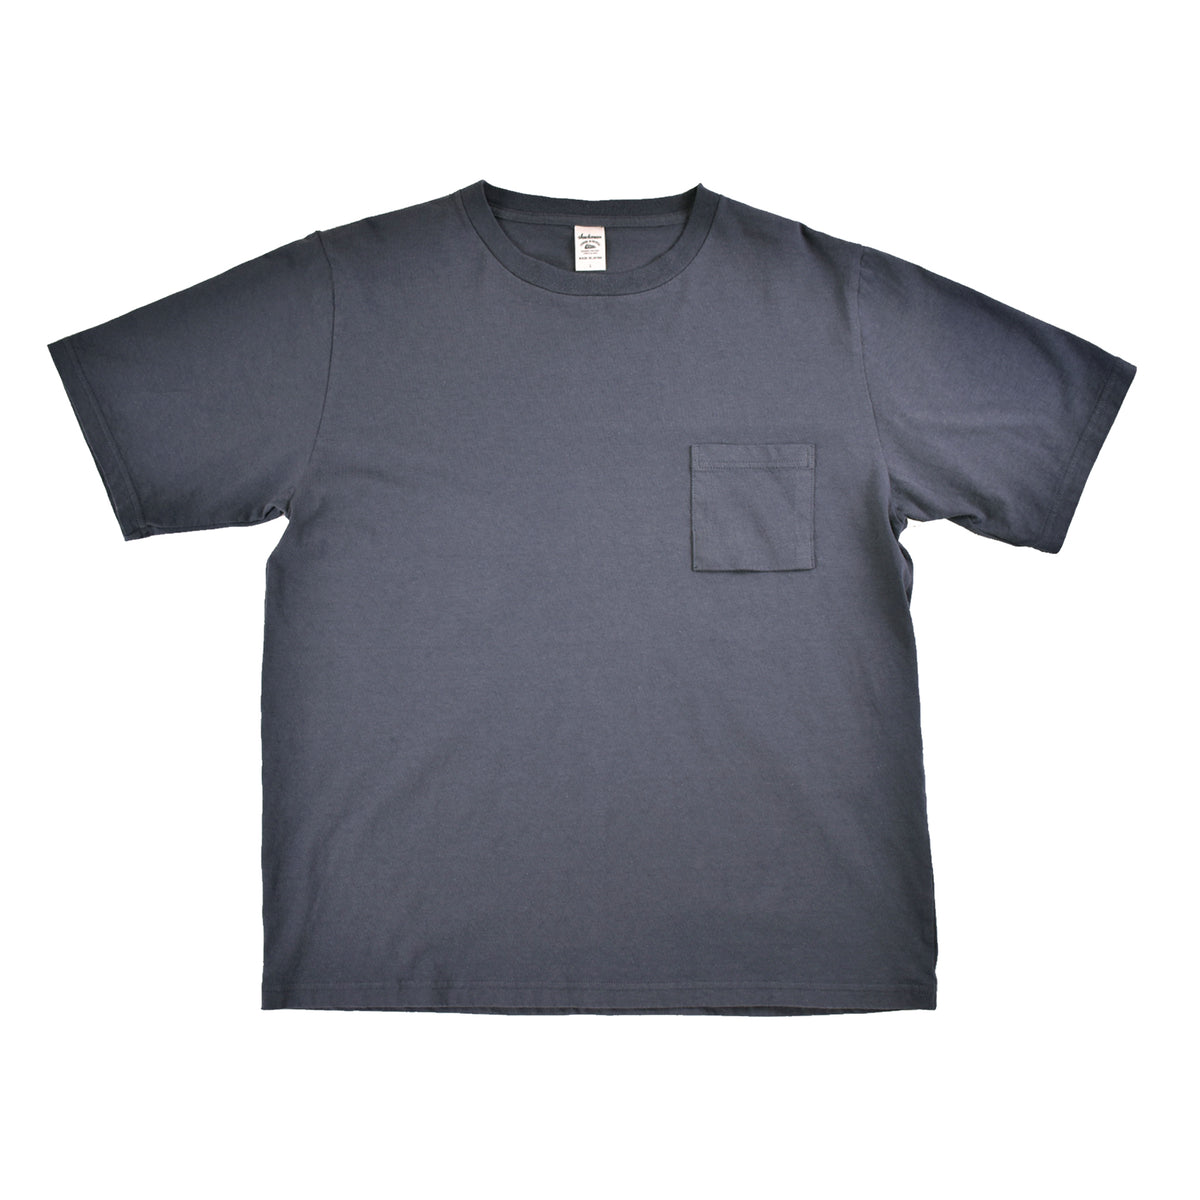 JACKMAN Pocket T Shirt Dark Grey